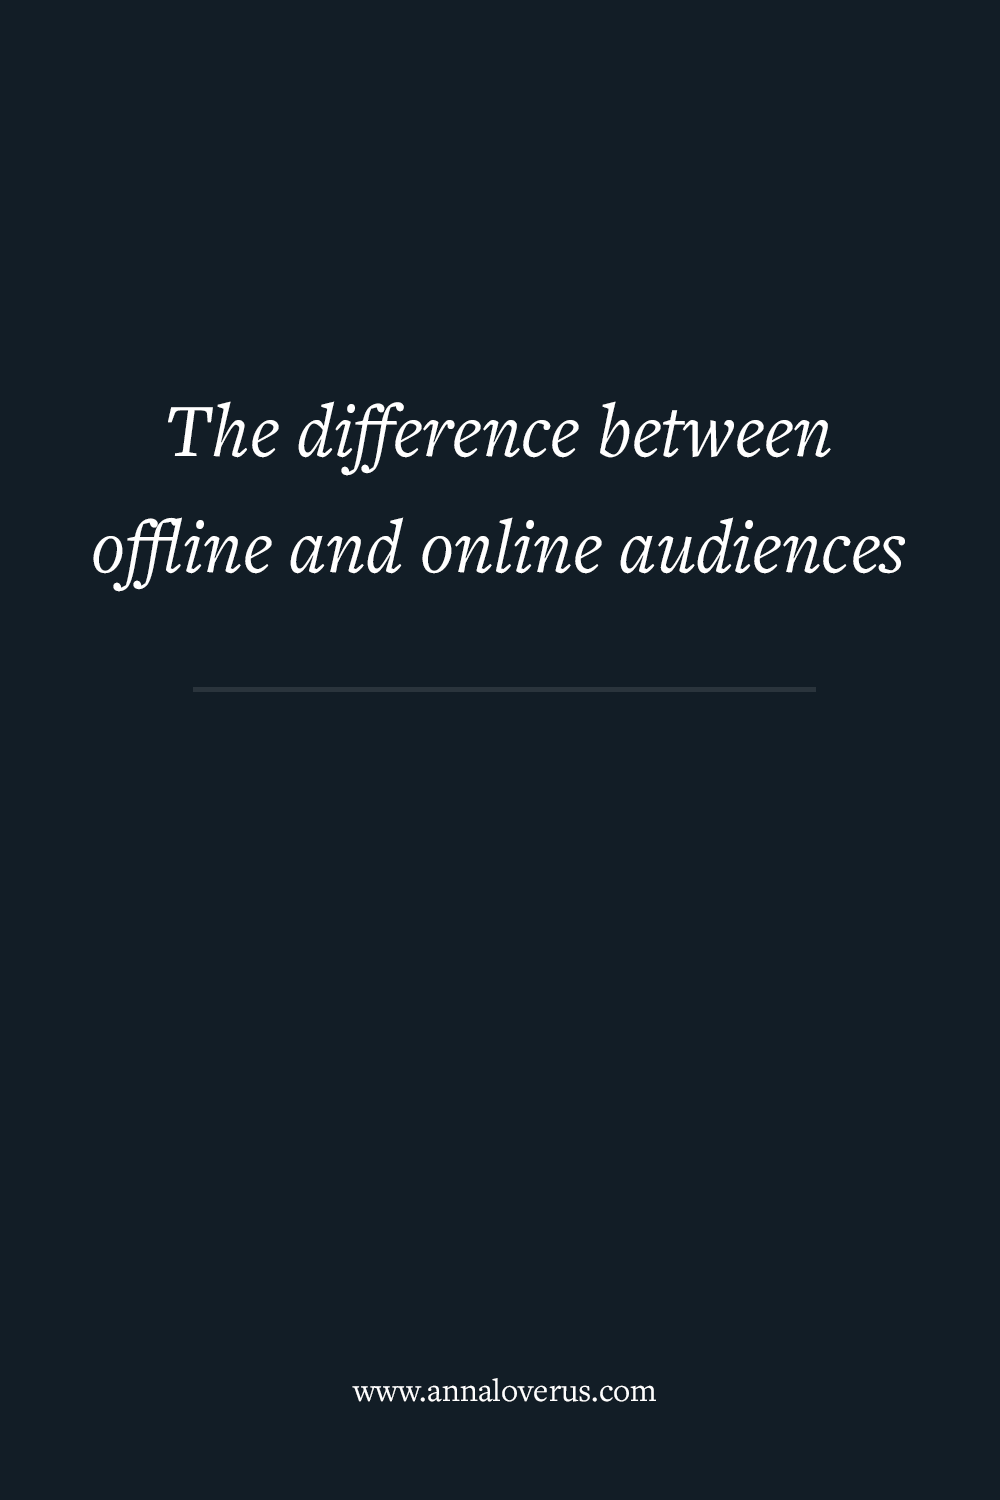 Most people working with marketing audiences today build an online audience like they used to build audiences for the offline world. But audiences don't translate very well between the two contexts.